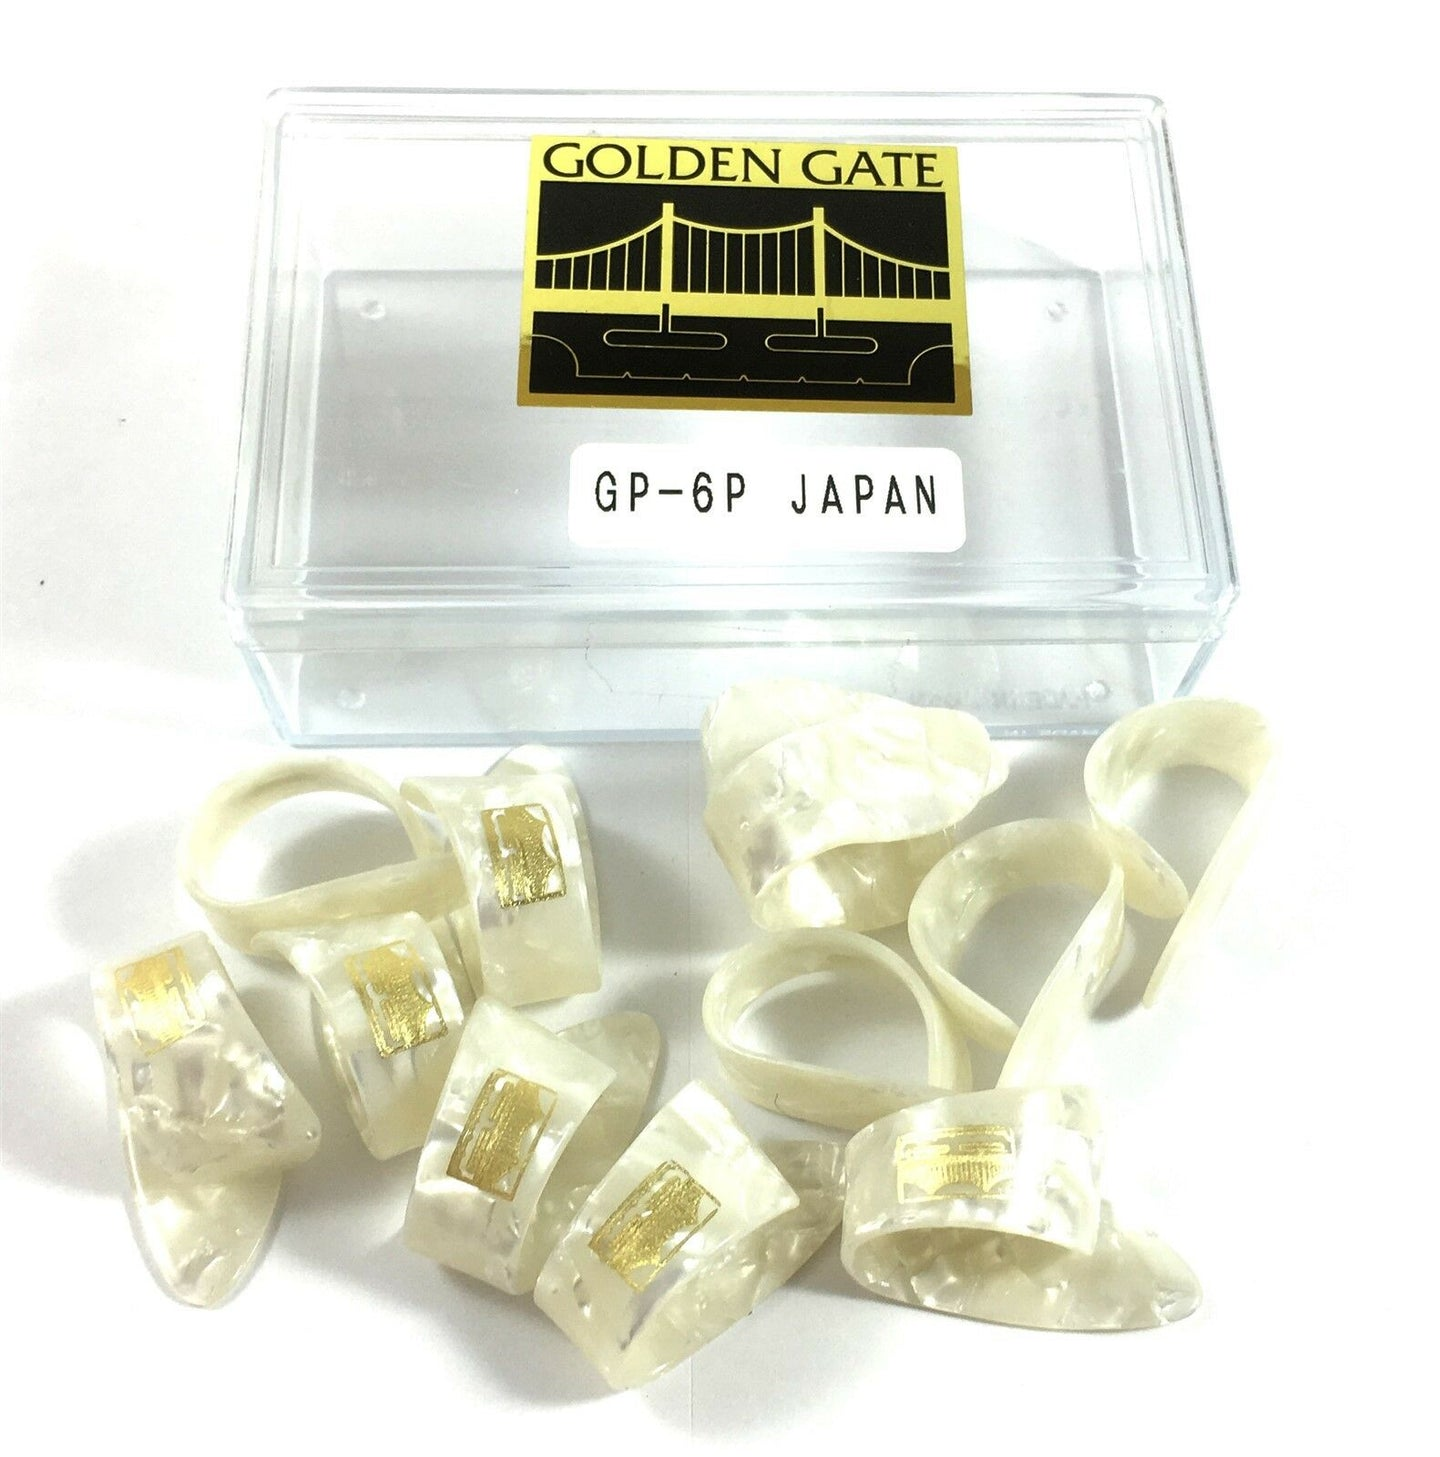 Golden Gate Thumb Picks  12 Pack  Pearloid  Guitar or Banjo  Large  White.